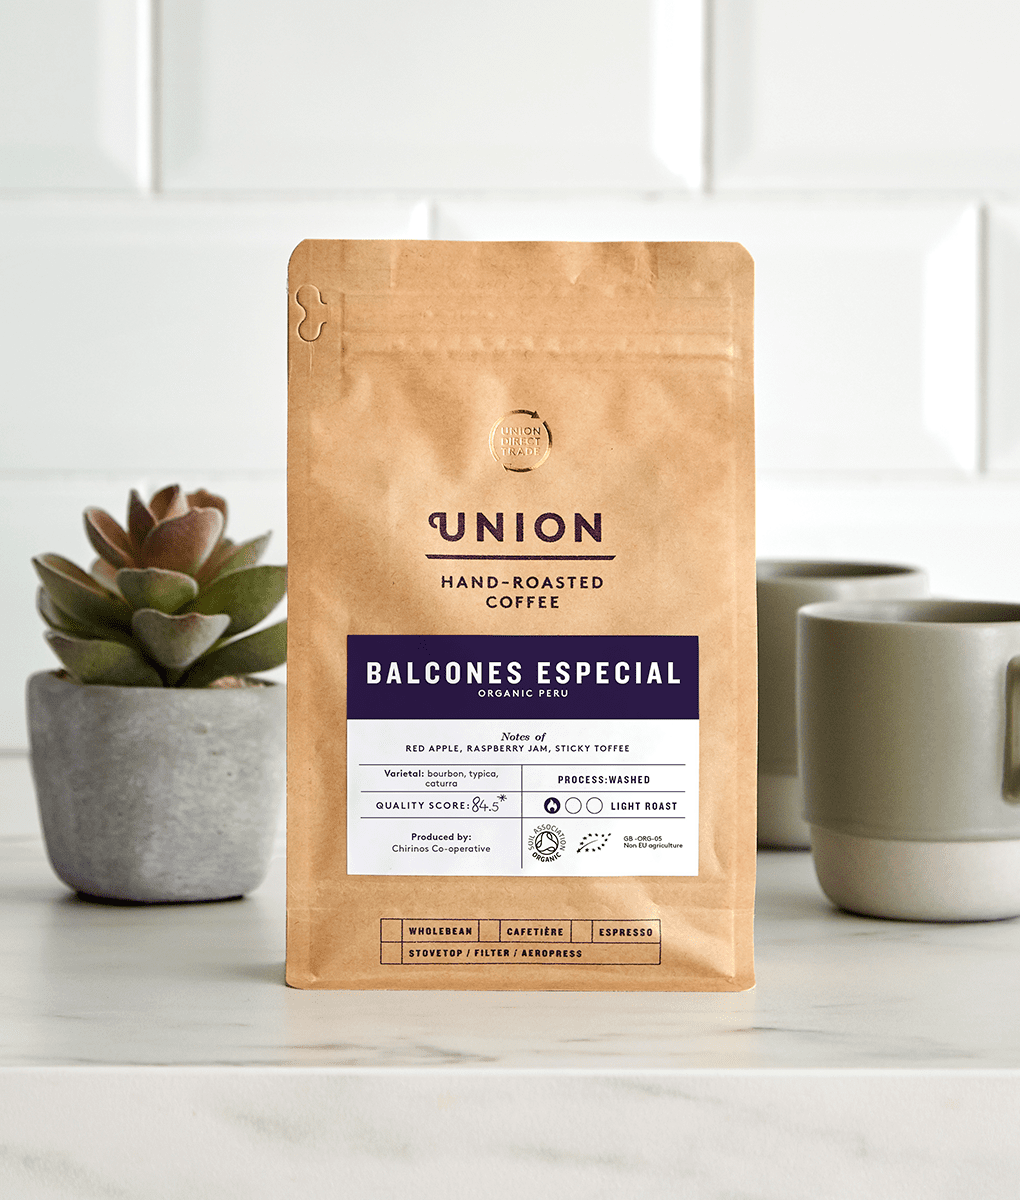 Balcones Especial, Peru, Union Coffee Bag